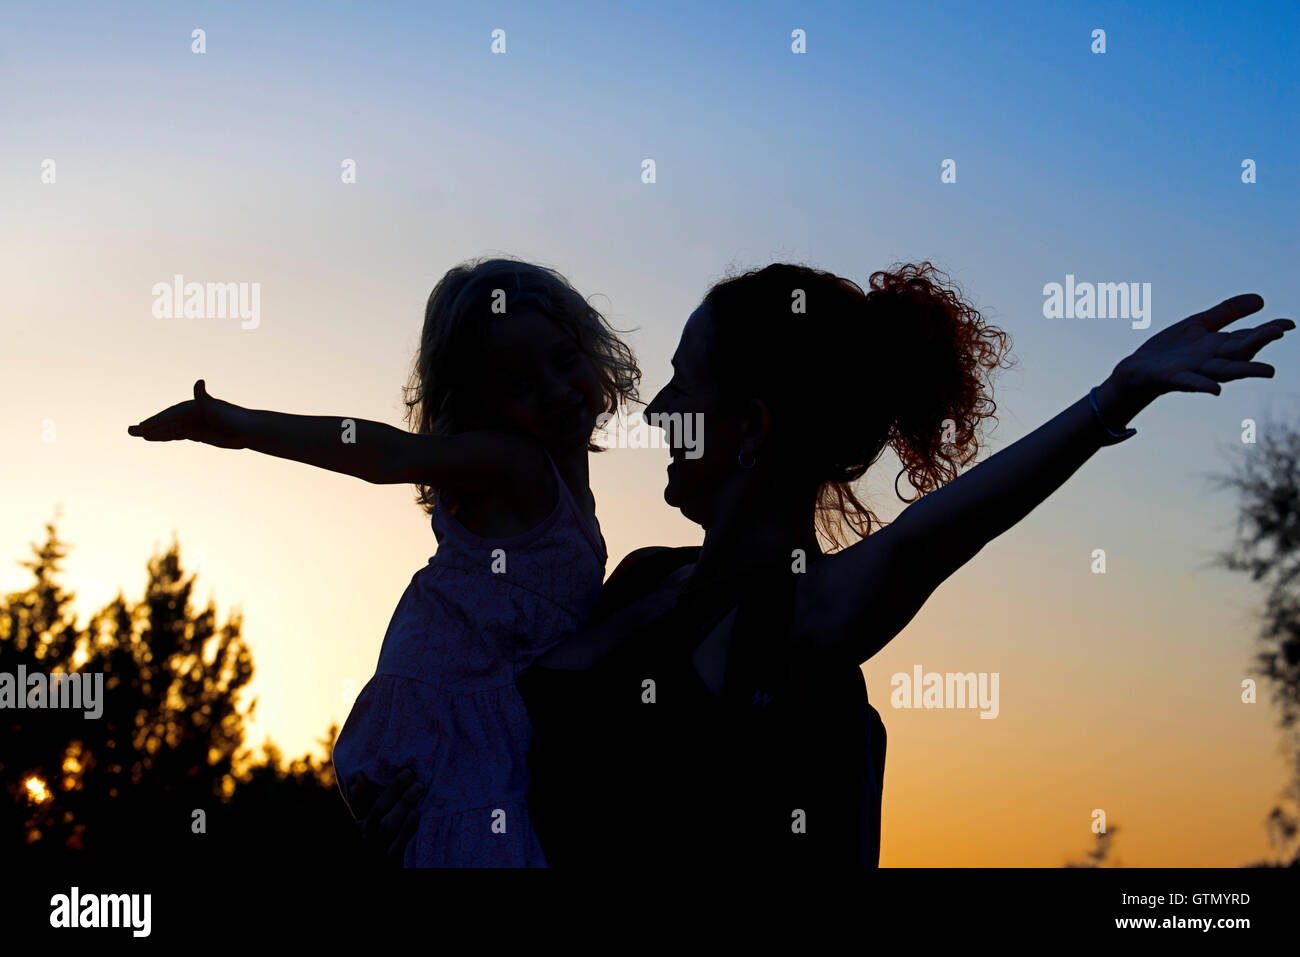 Backlighting. Mother with a child. Sunset. Pudent Lake. Formentera. Balearic Islands, Spain, Europe. Stock Photo